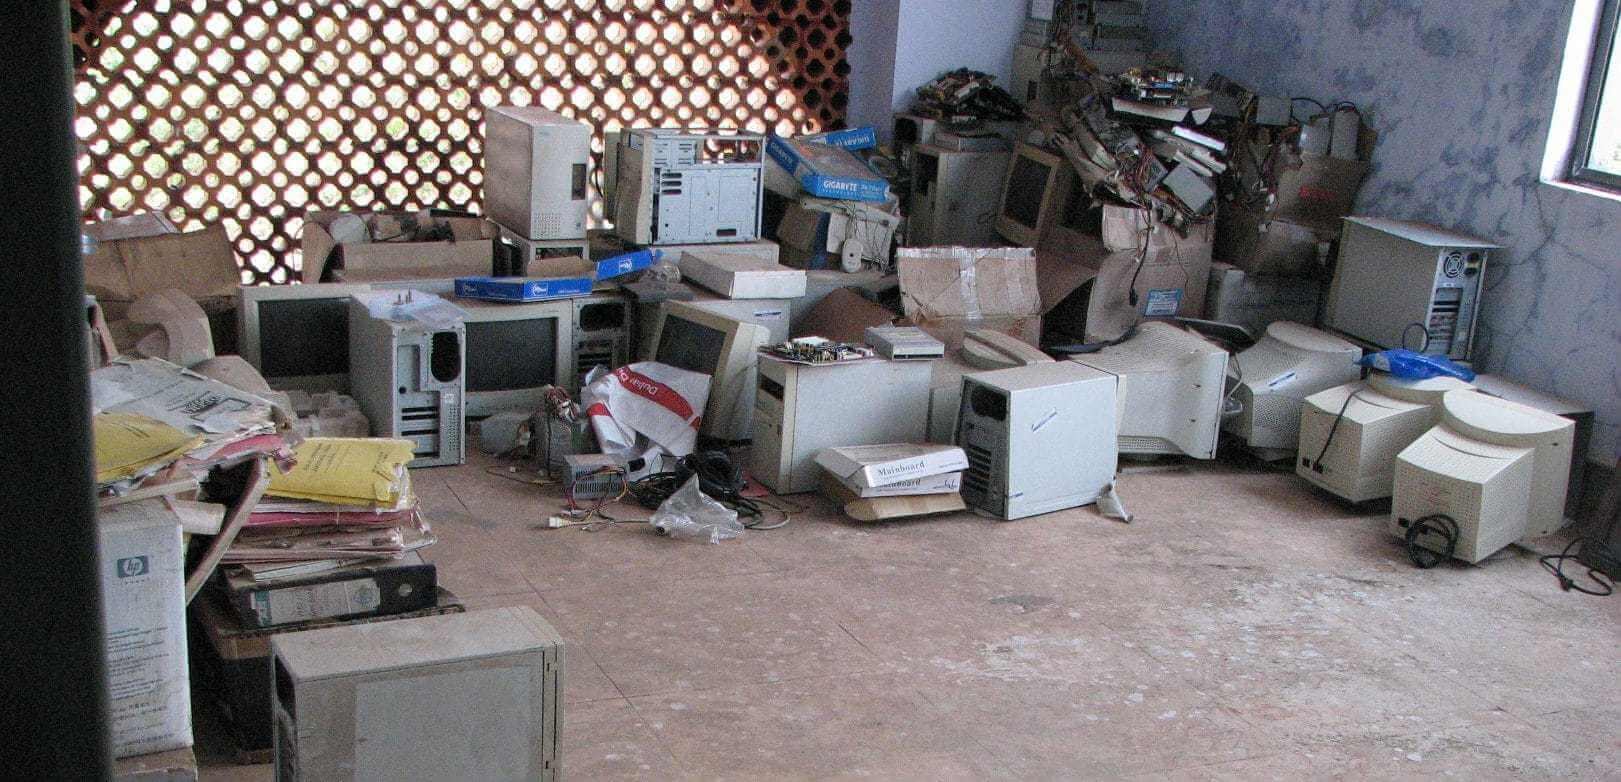 E waste1 e1569893450160 - Electronic Waste - Junk Removal